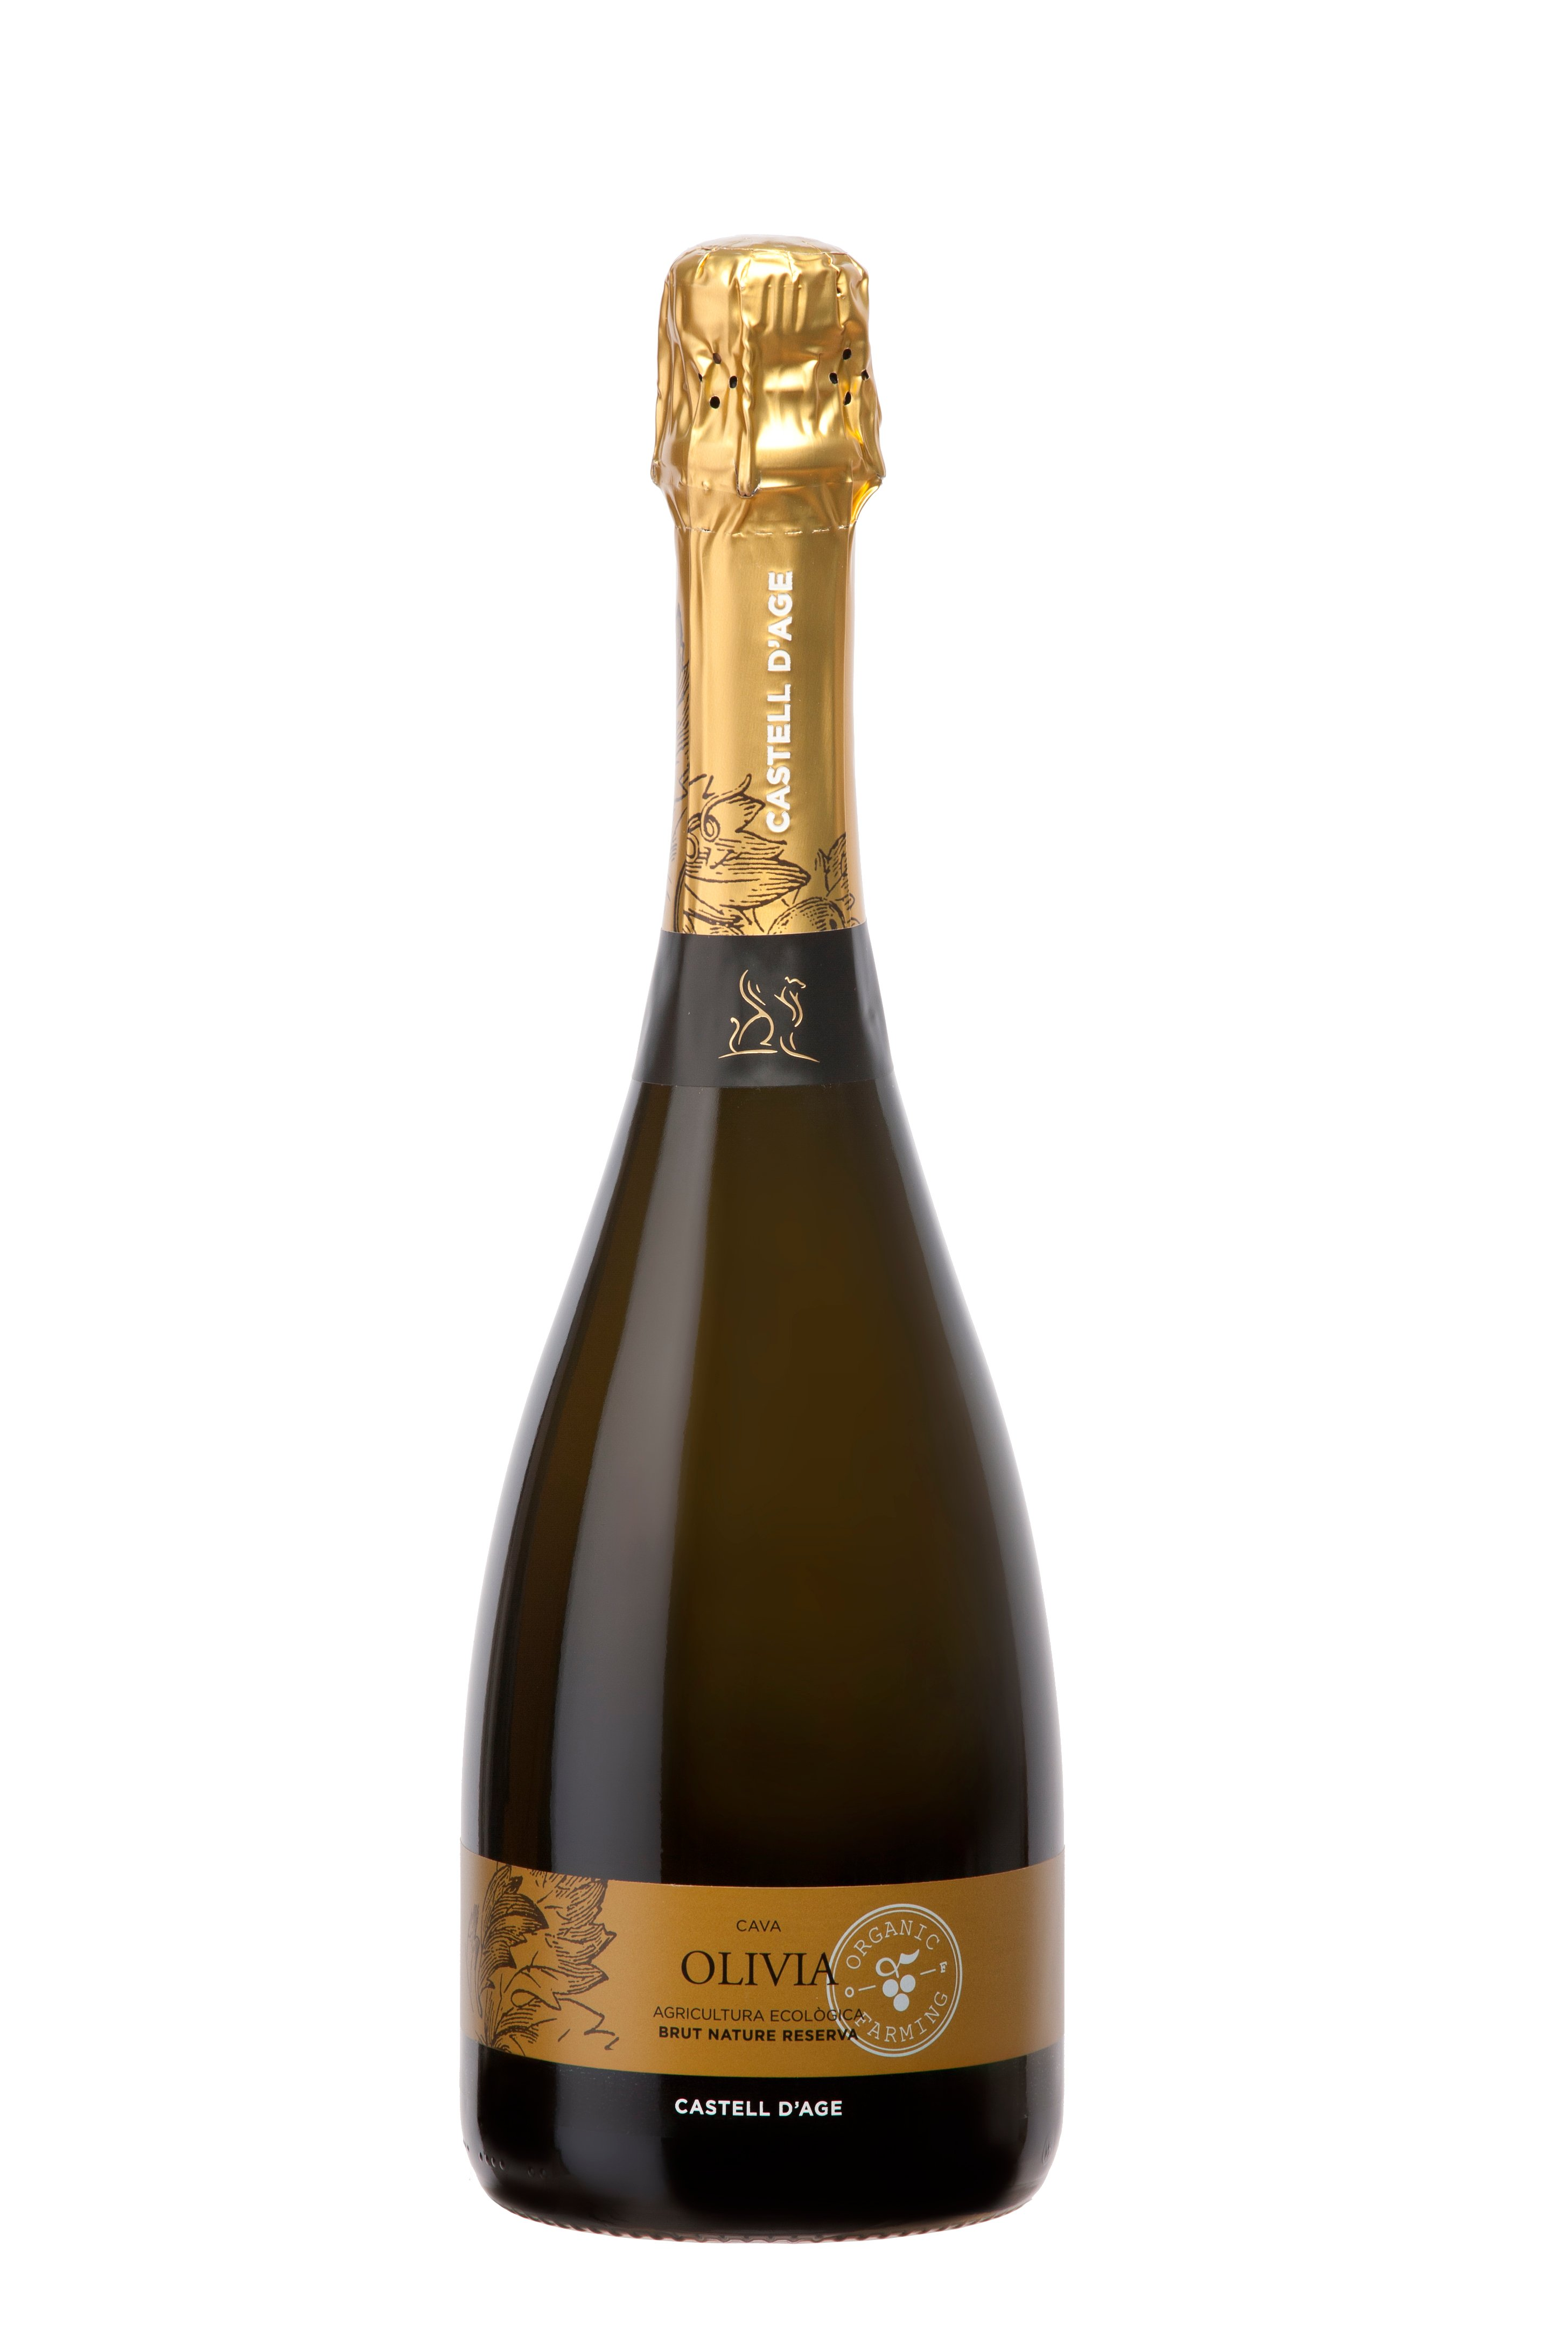 CAVA Olivia Brut Nature Reserva - 20 months aging  (100% Chardonnay)